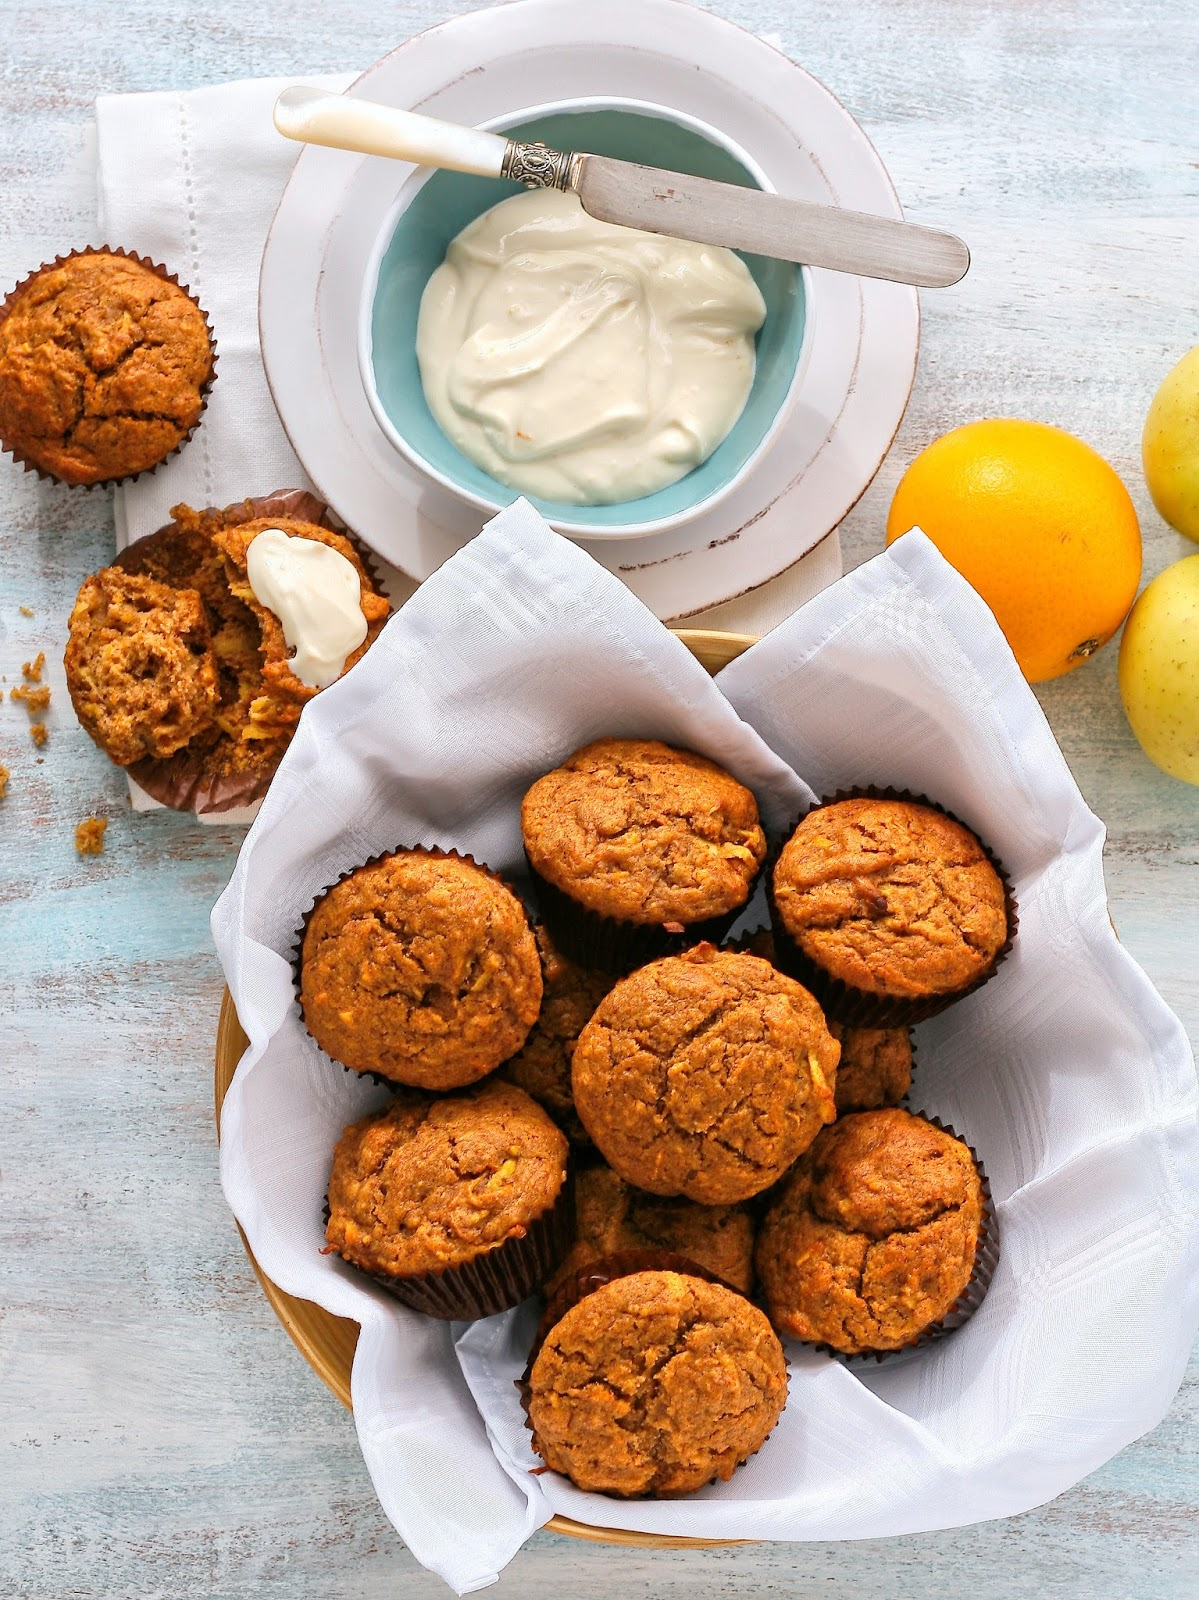 Date muffins with cream cheese topping.